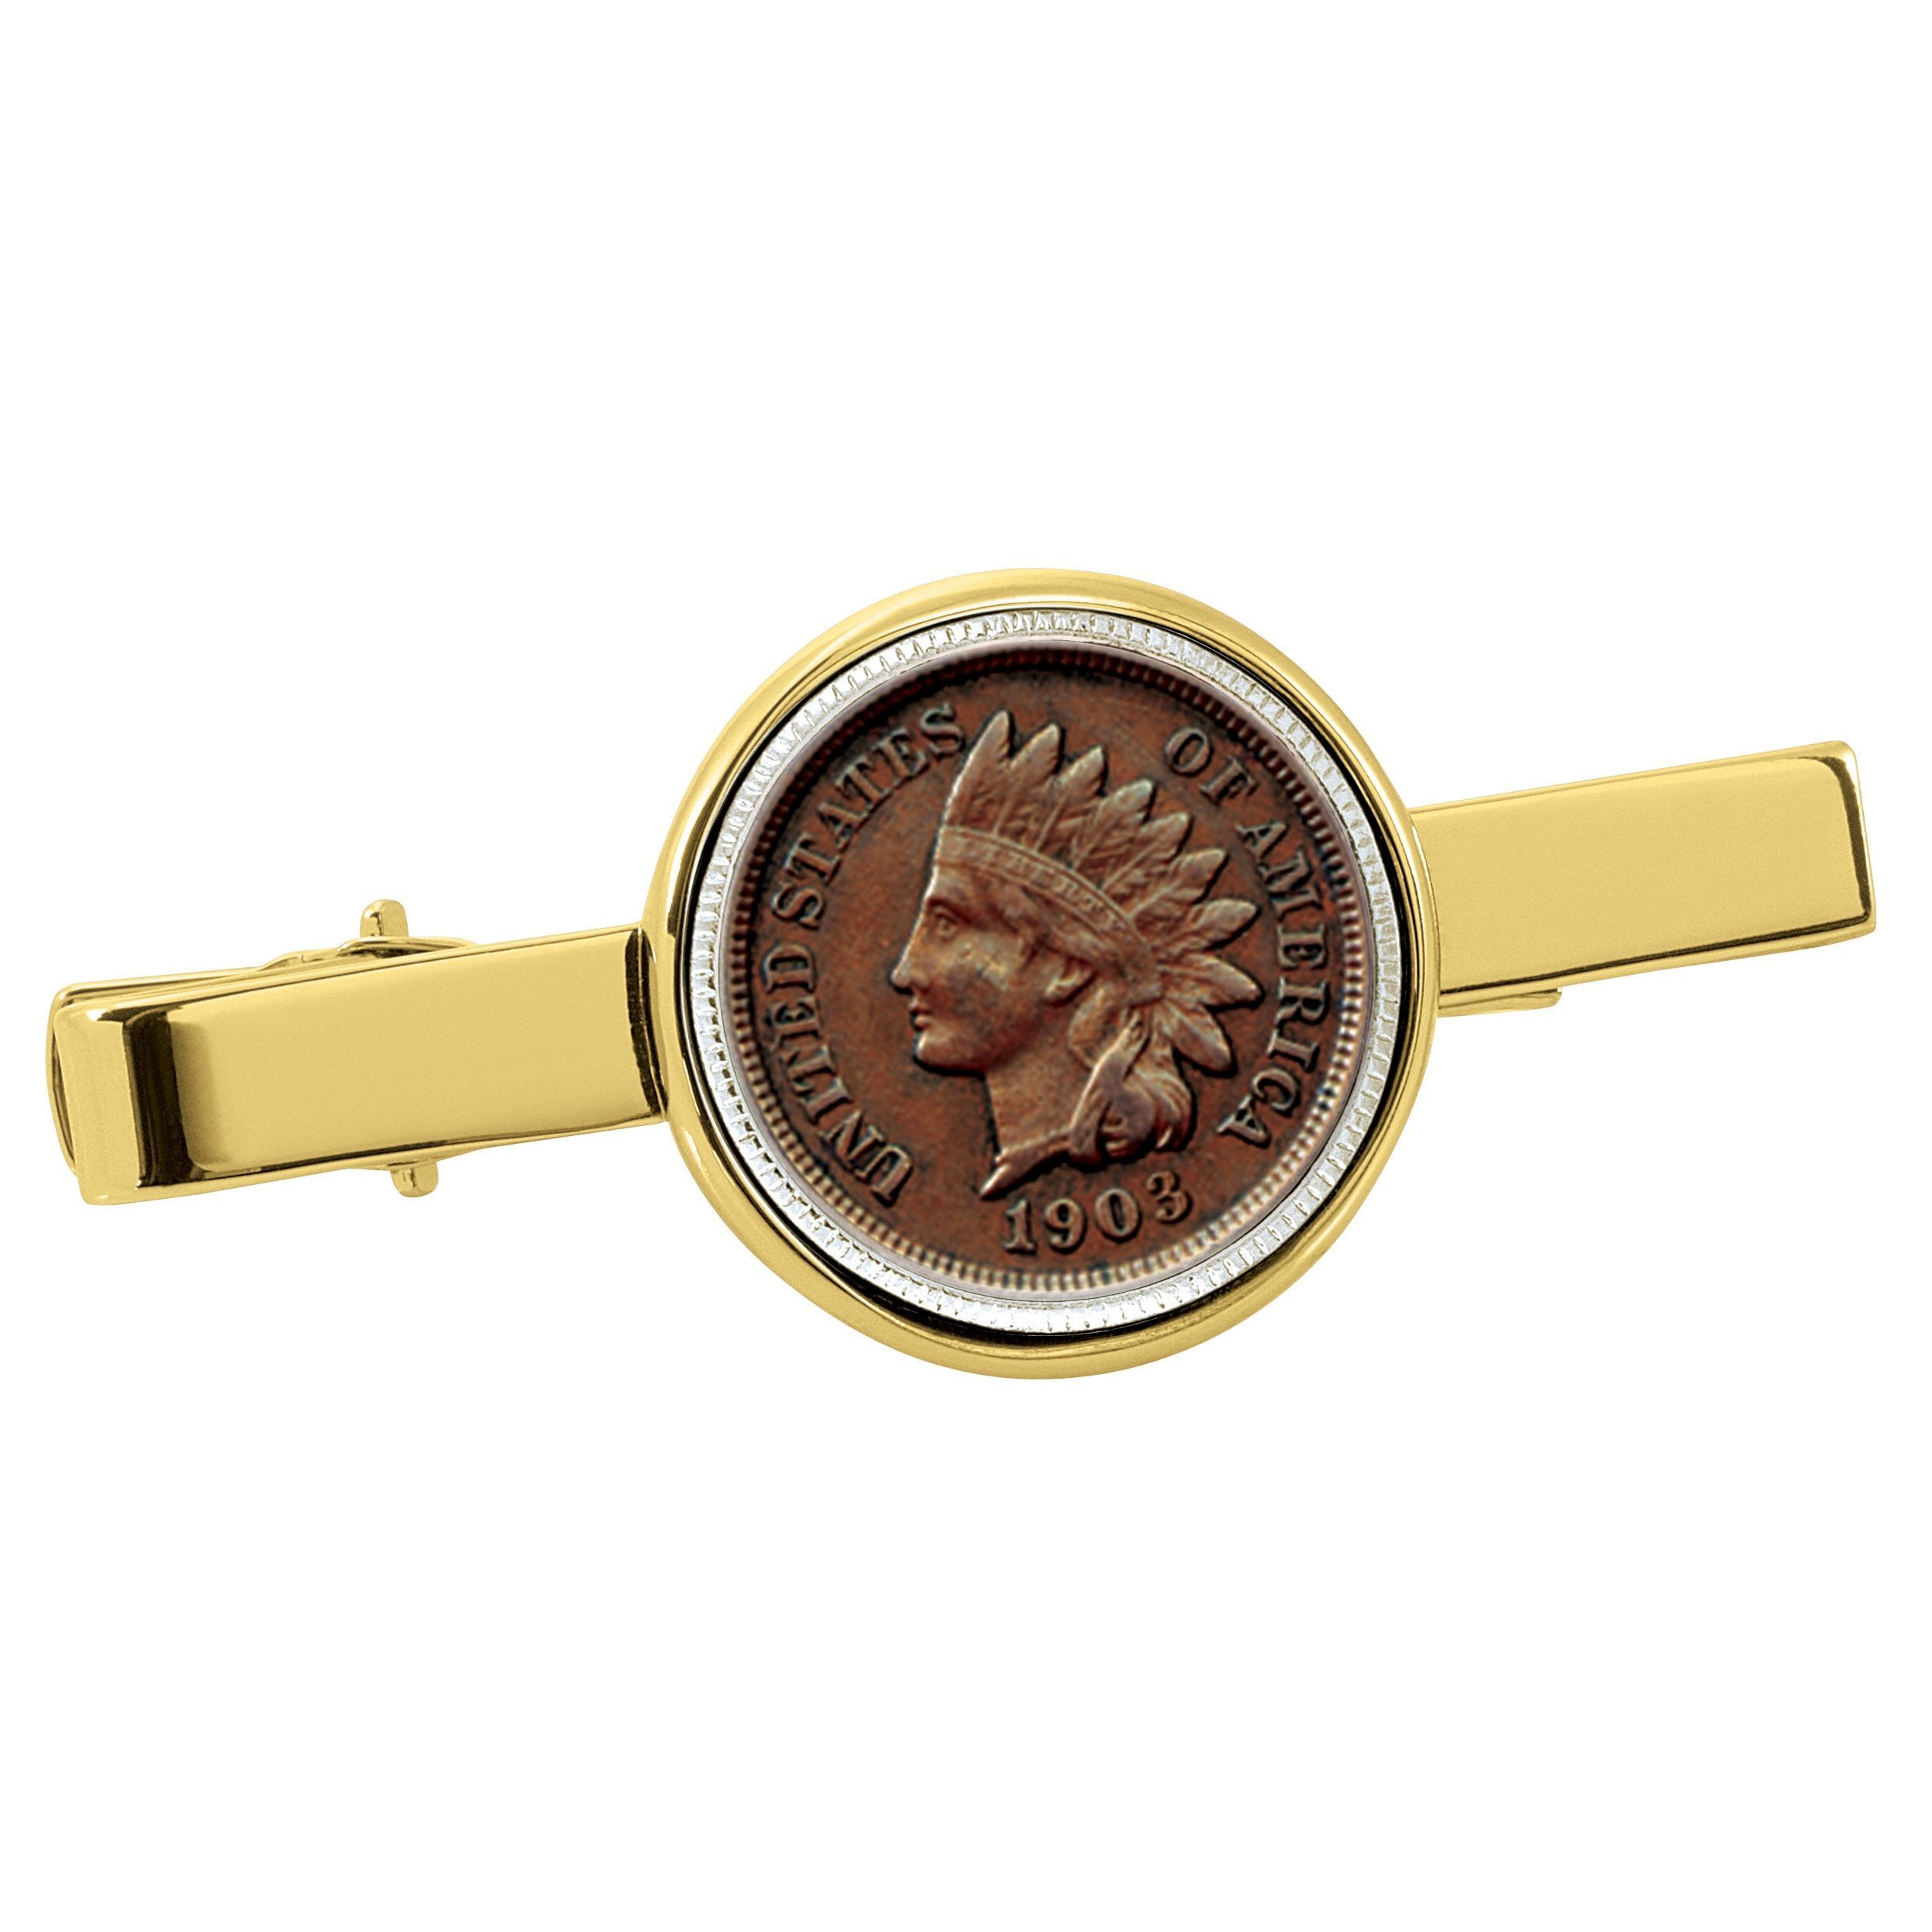 Smithsonian Institution Indian Penny Goldtone Tie Clip